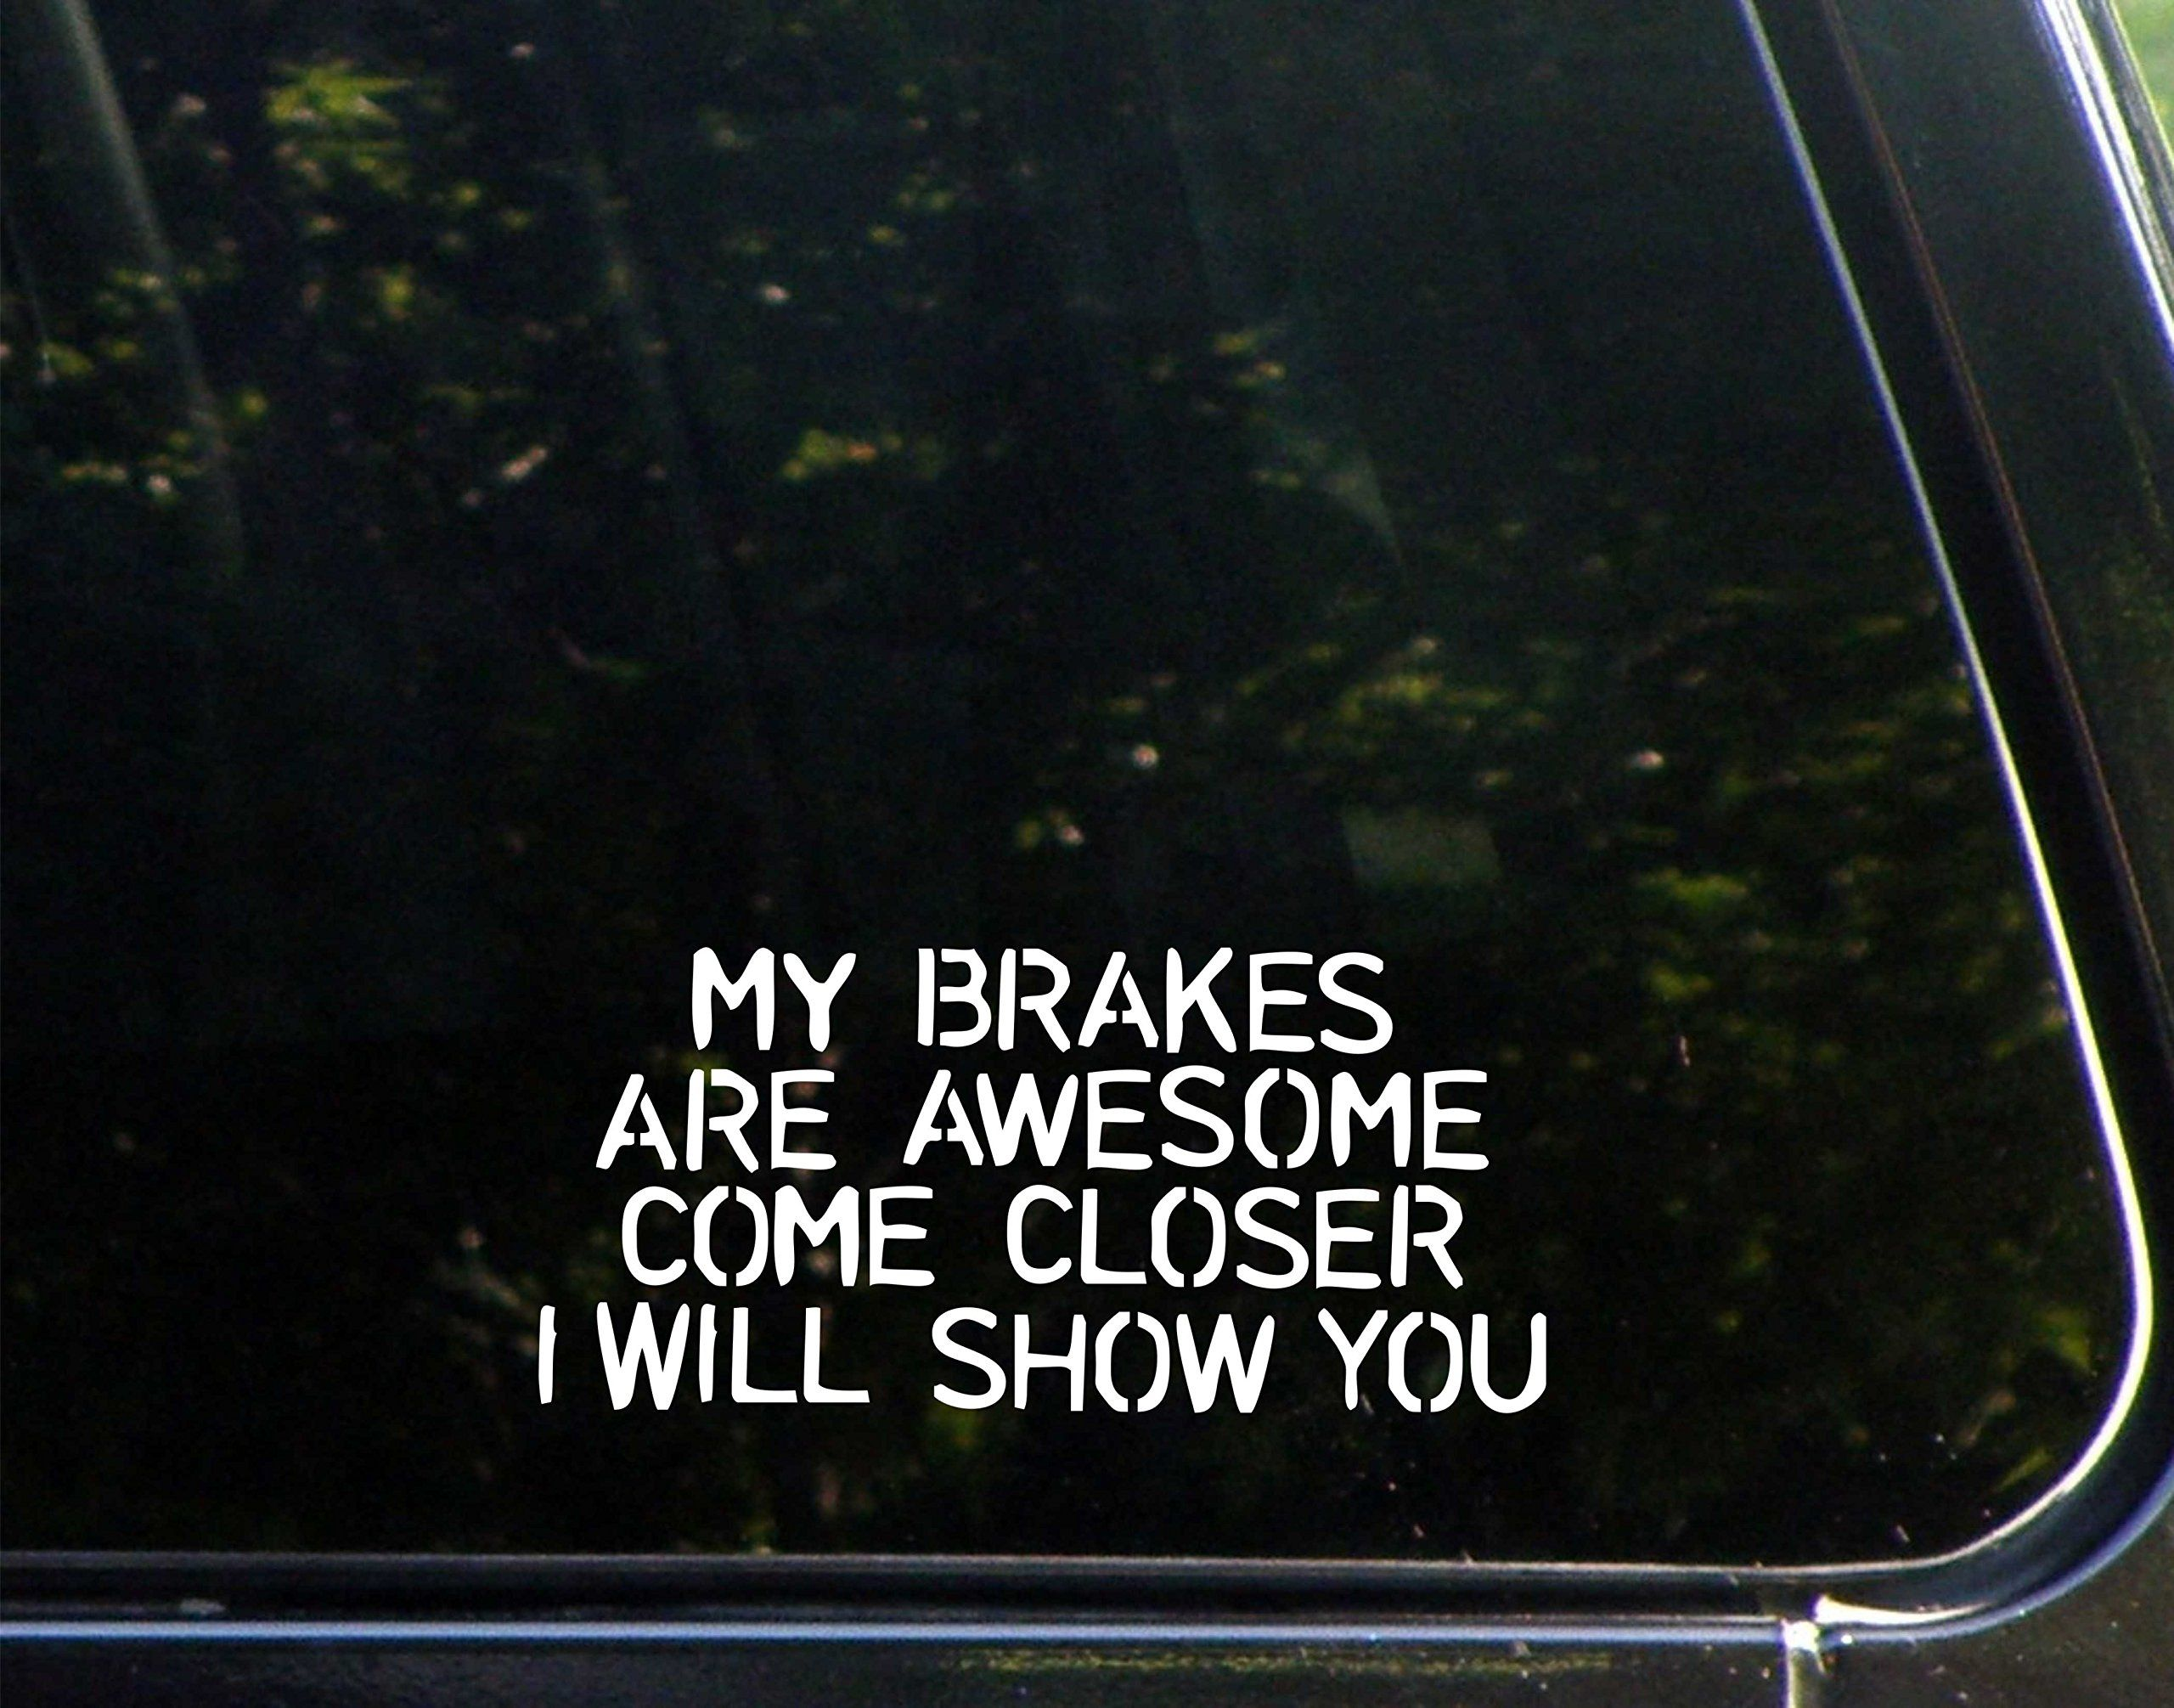 My Brakes Are Awesome Come Closer I Will Show You X - Vinyl car decals for windows